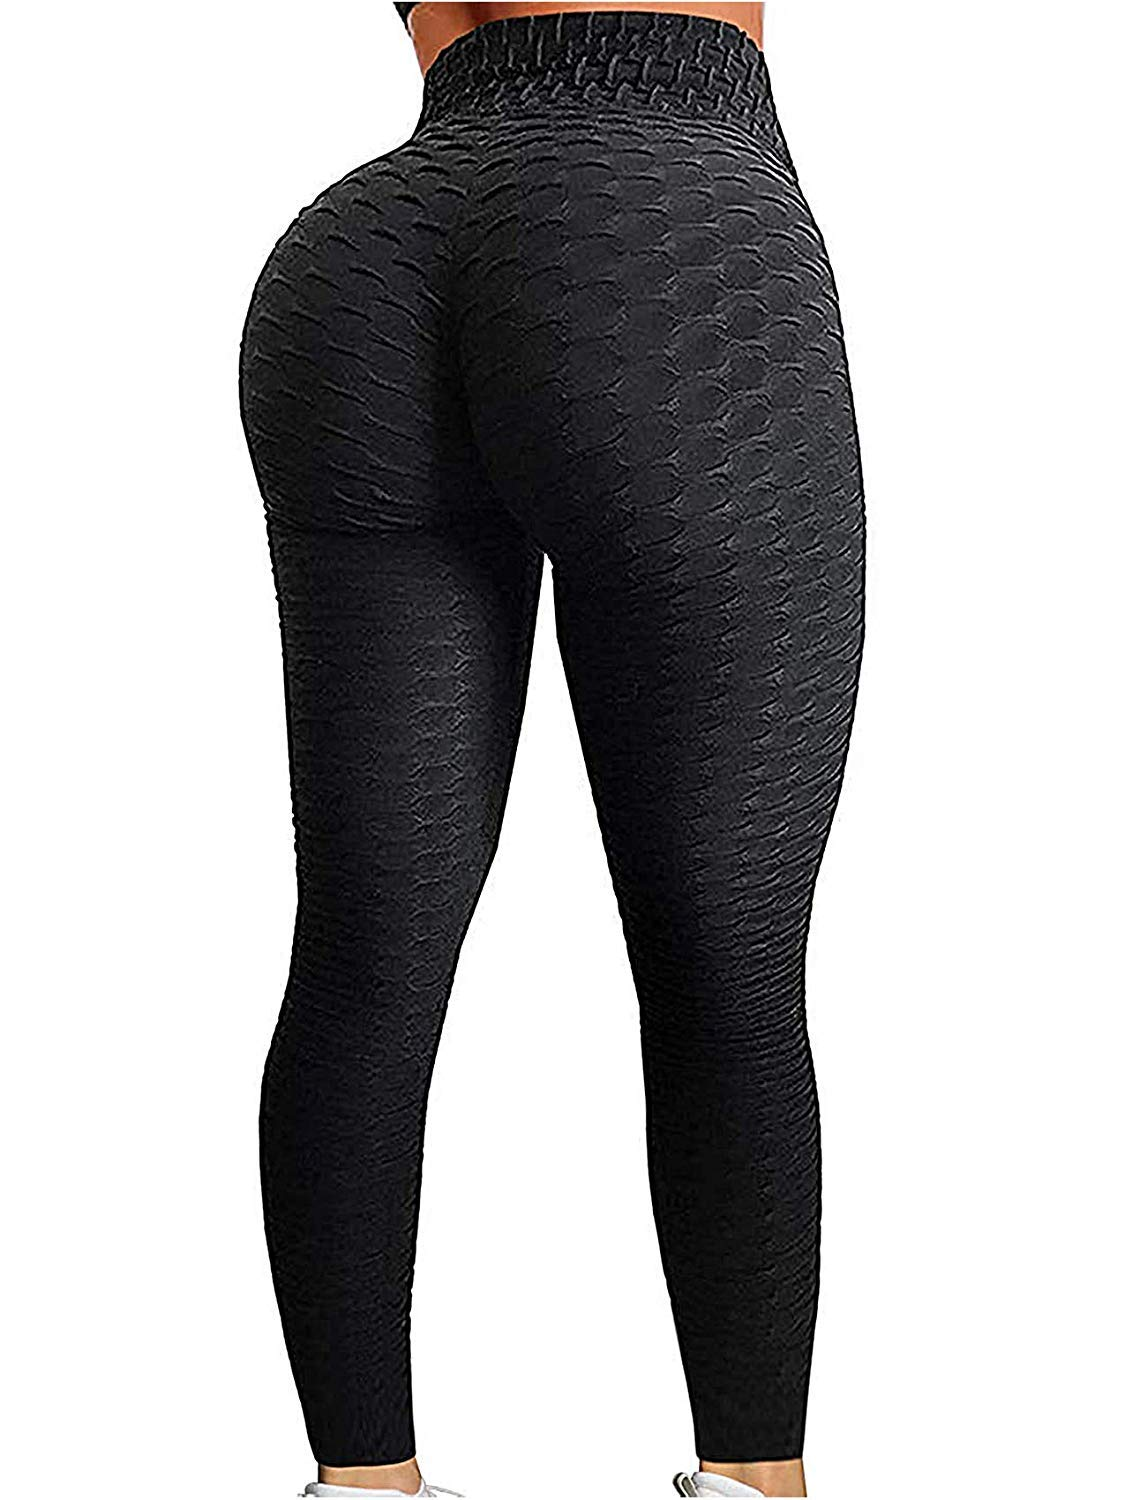 QOQ Womens High Waist Yoga Pants Tummy Control Slimming Textured Booty Leggings Workout Ruched Butt Lift Tie Dye Pants